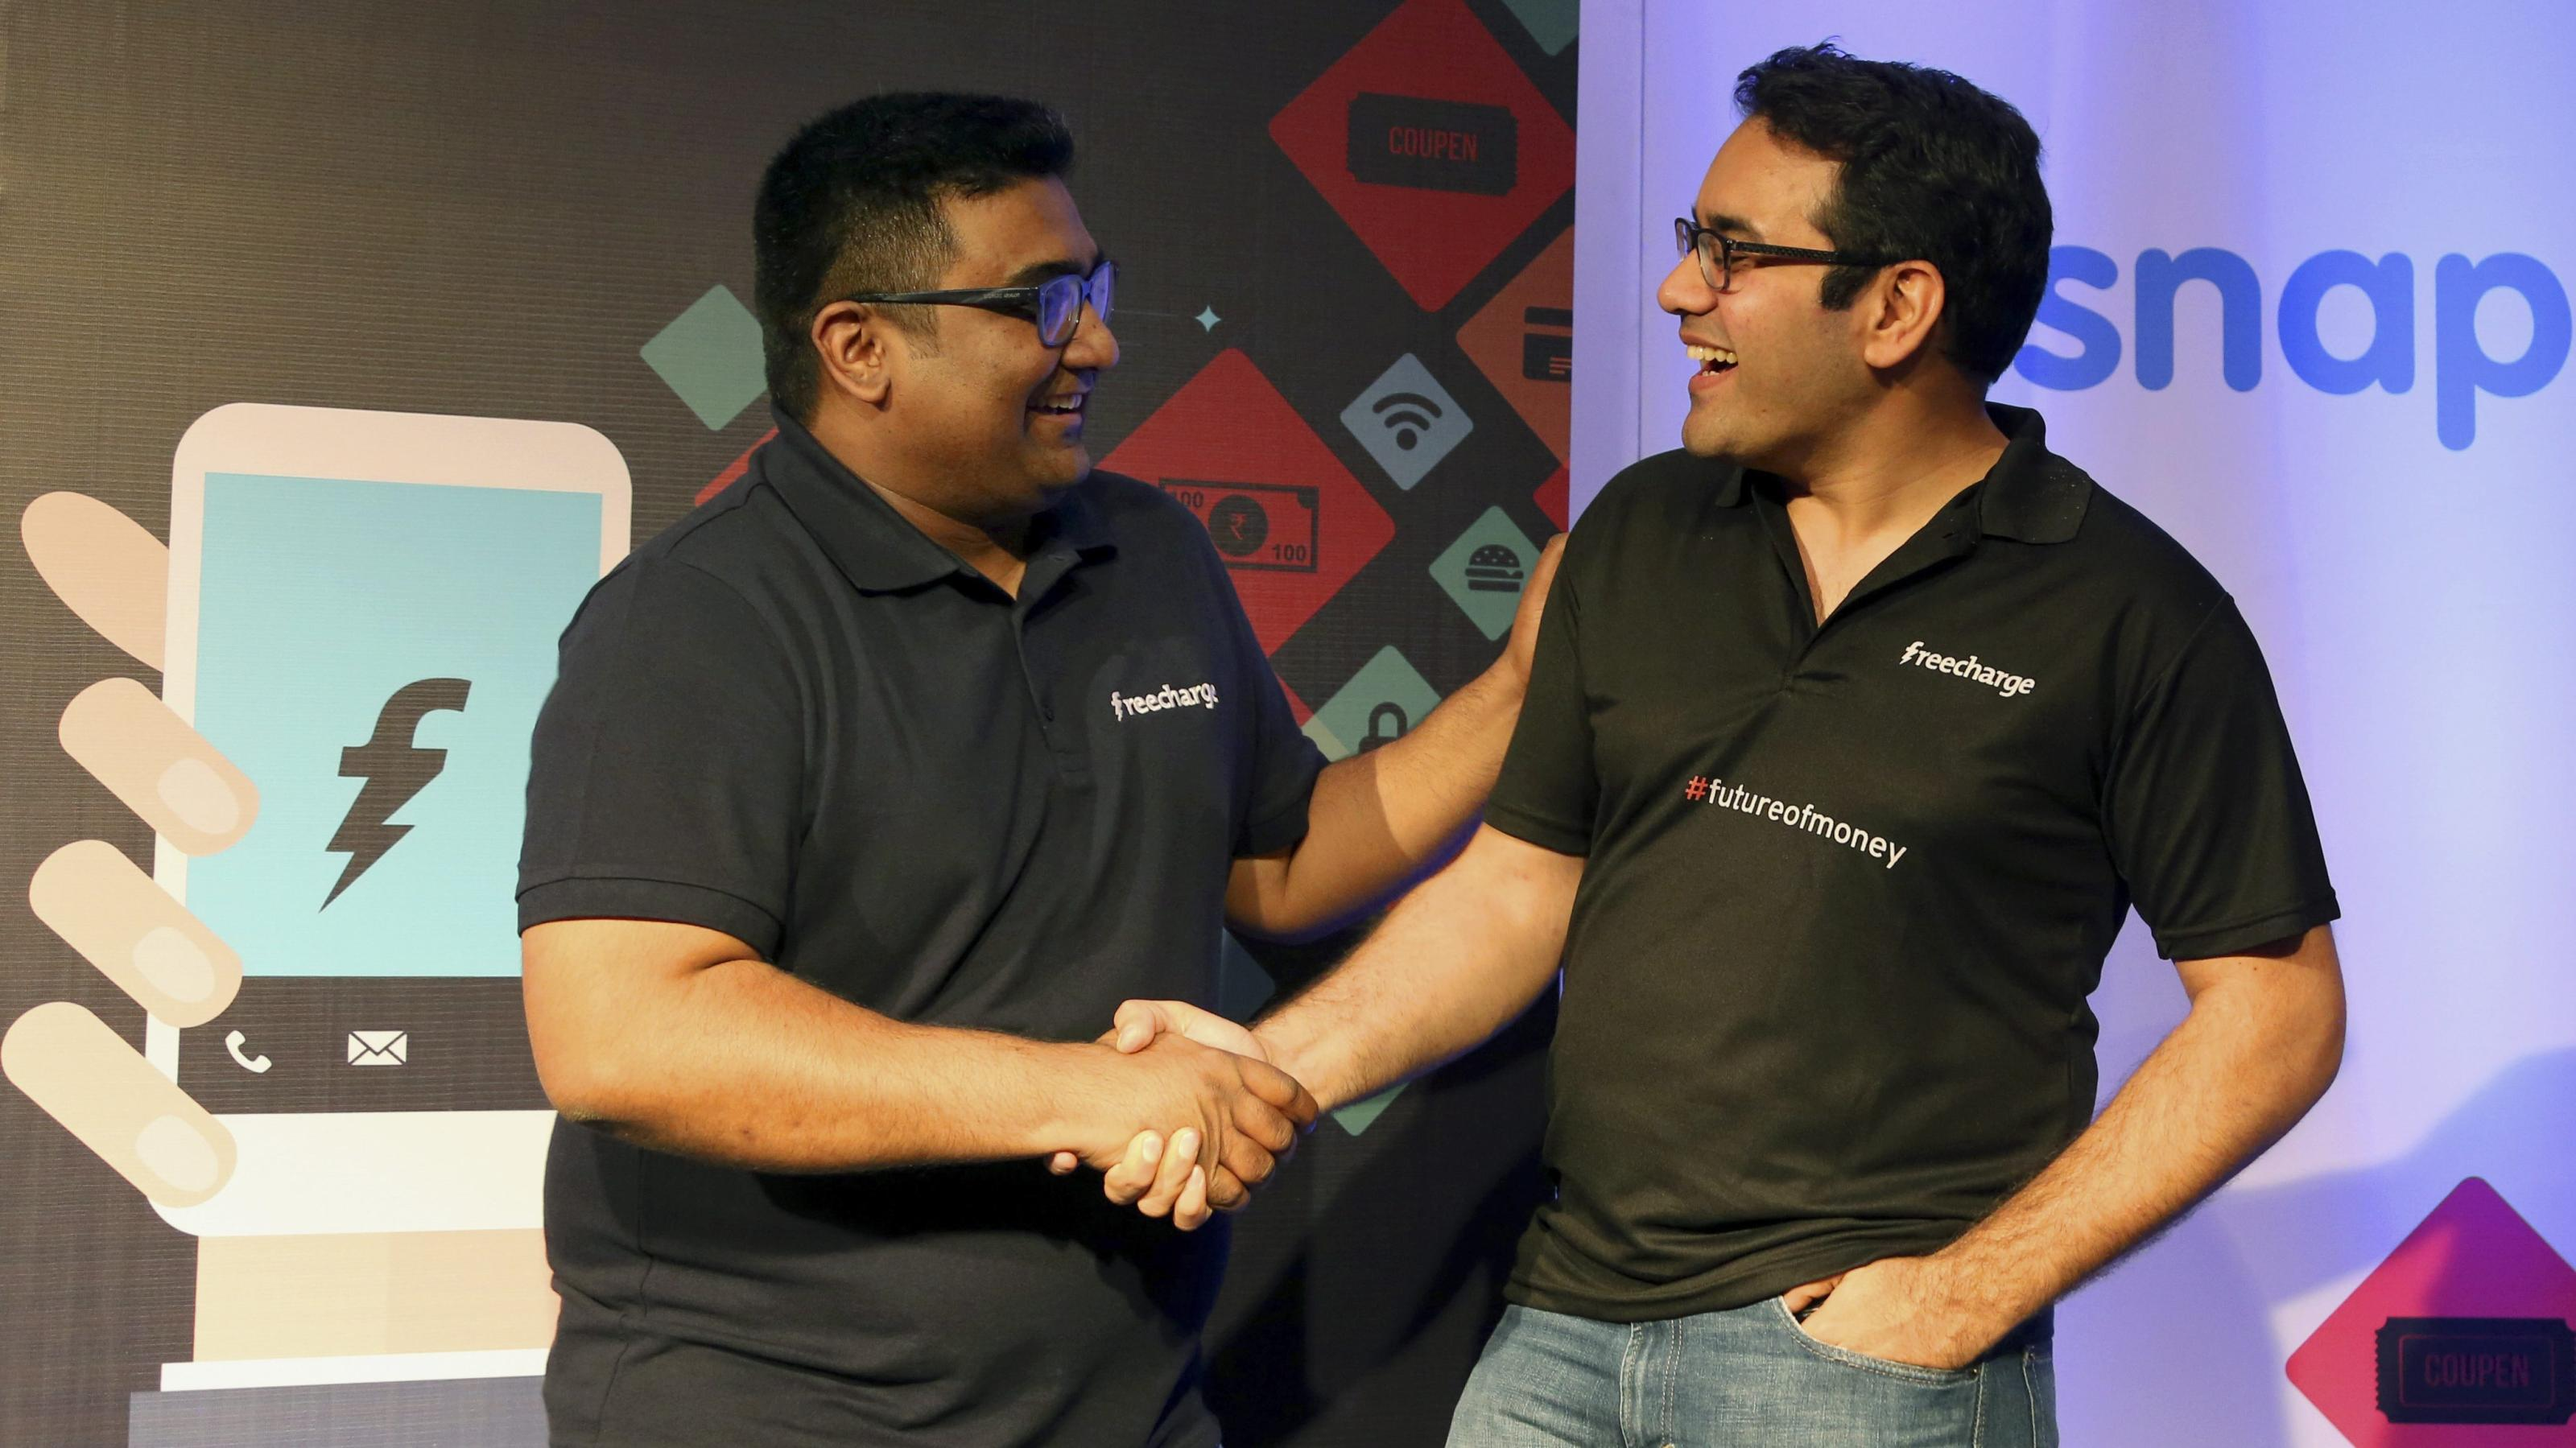 Kunal Shah asked Twitter for product manager interview questions